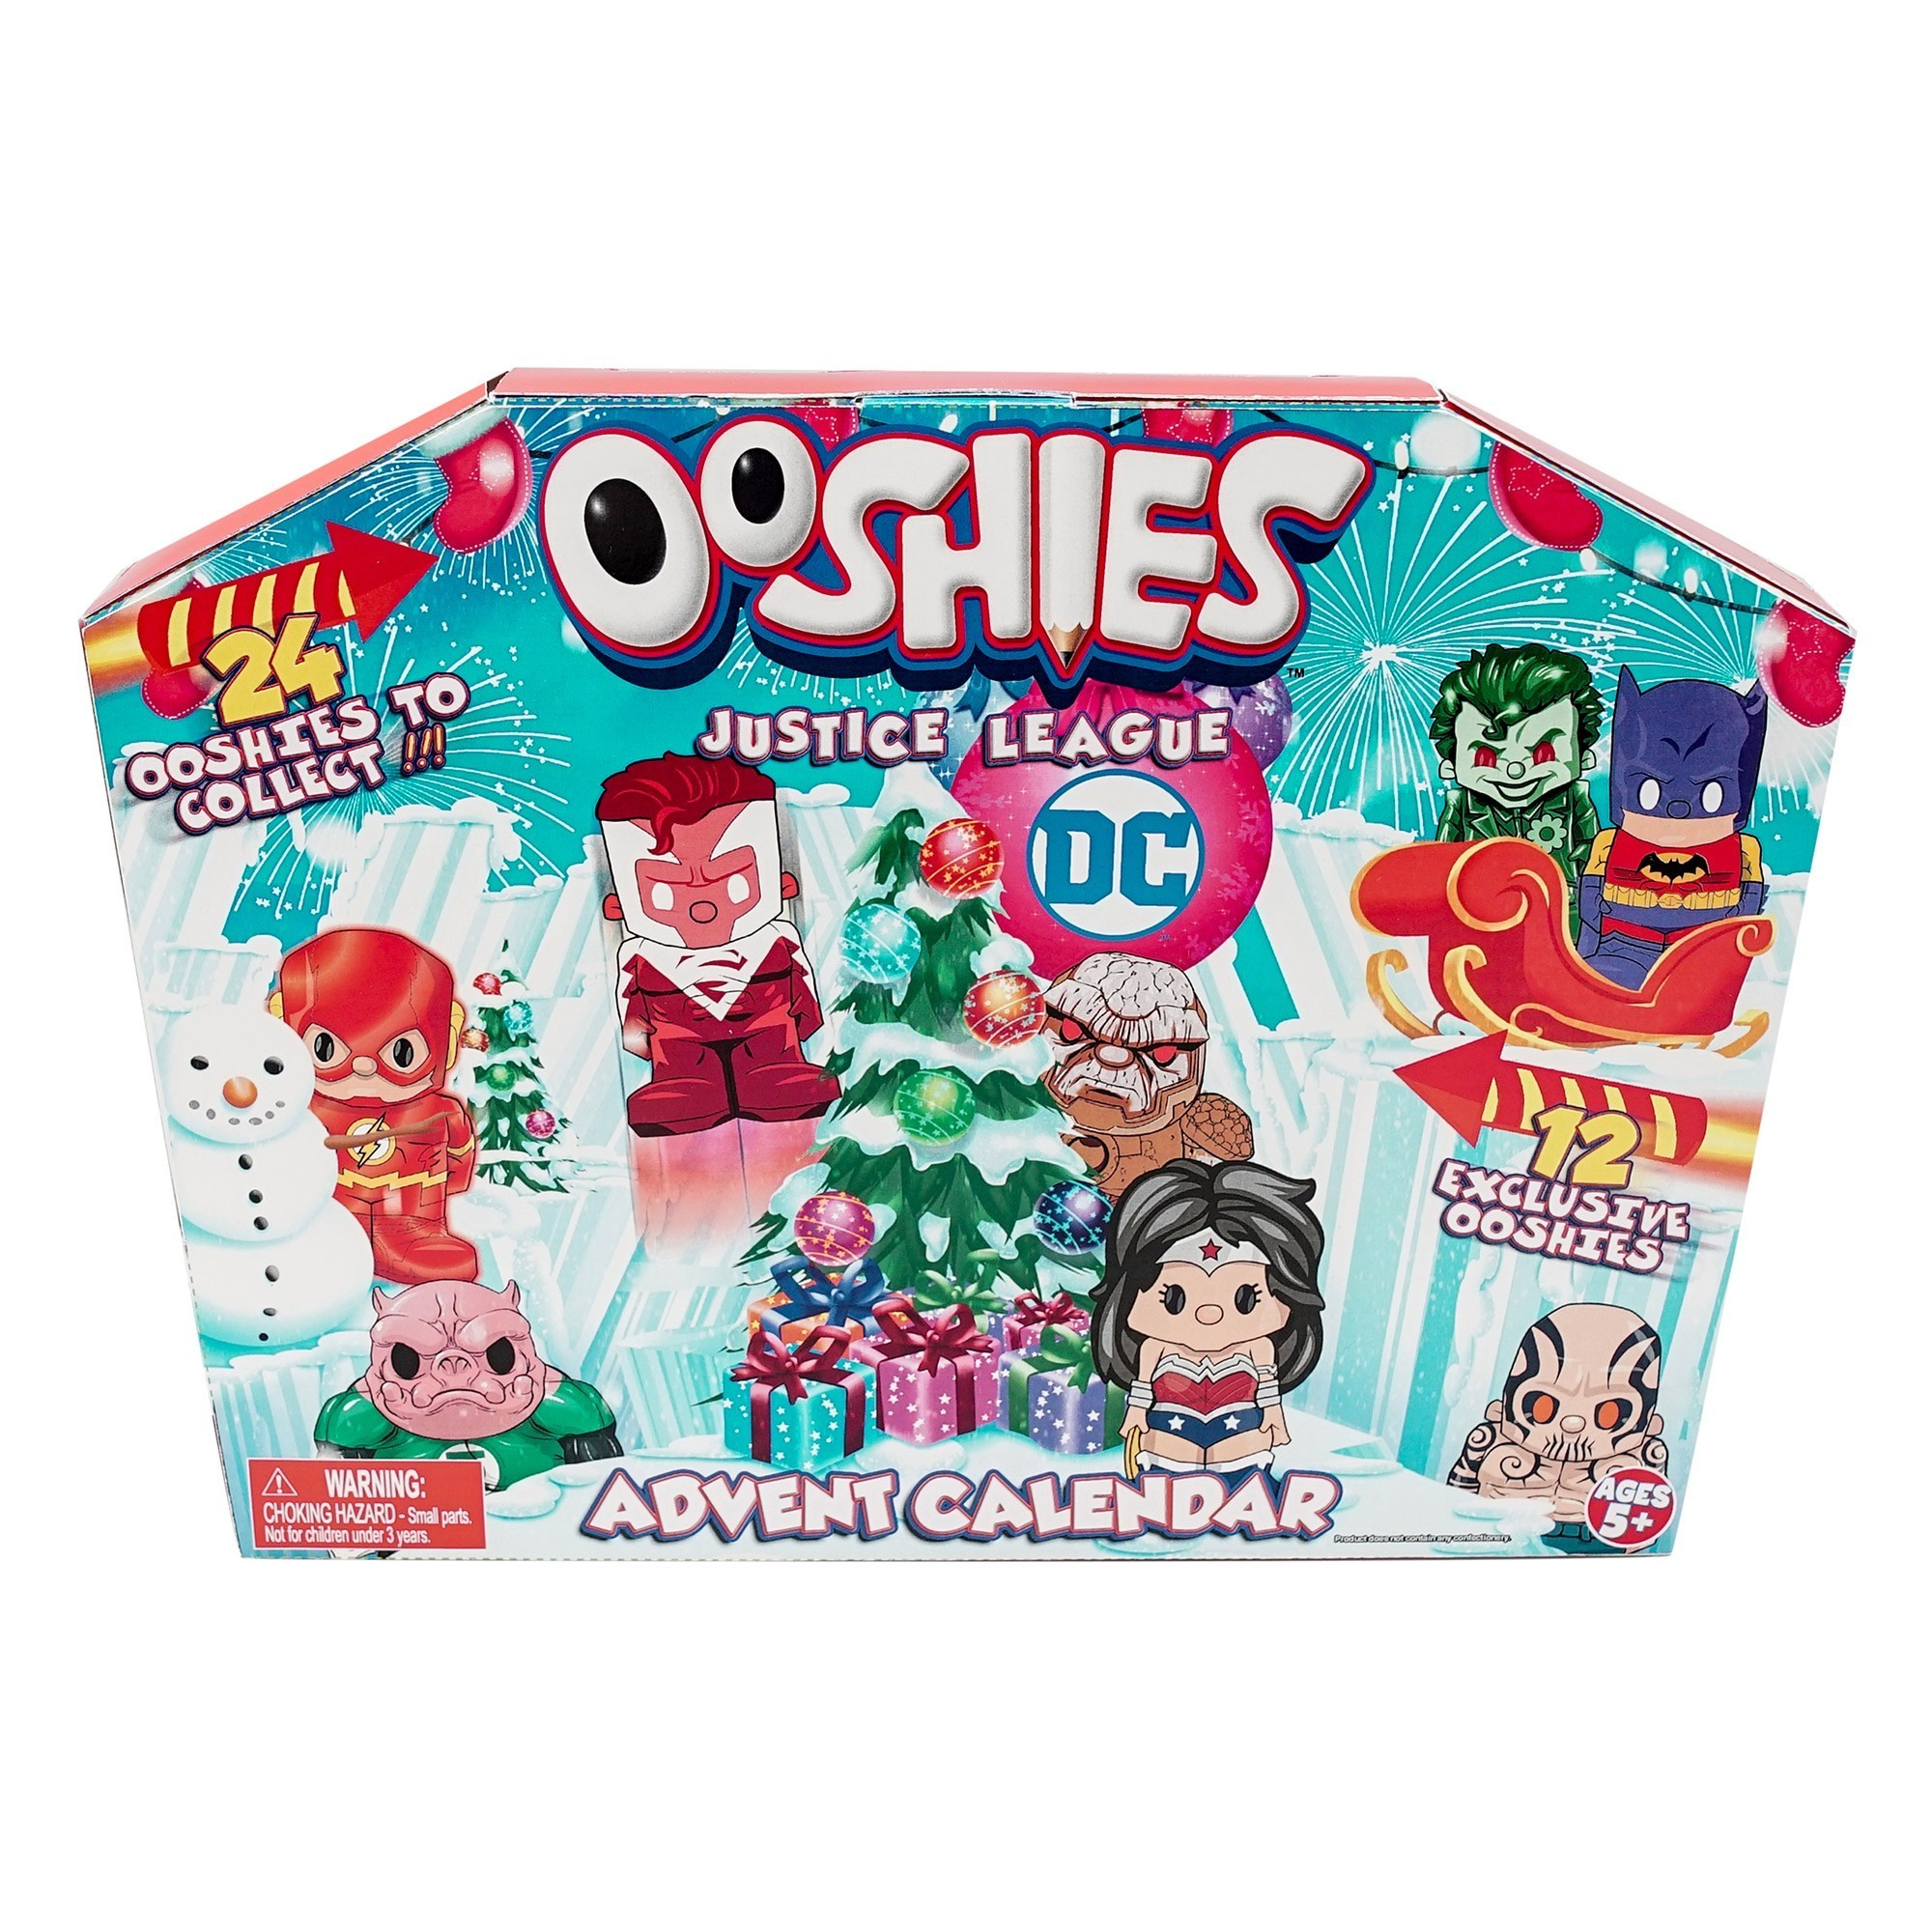 Ooshies DC Comic Justice League Advent Calendar 2018 – Christmas